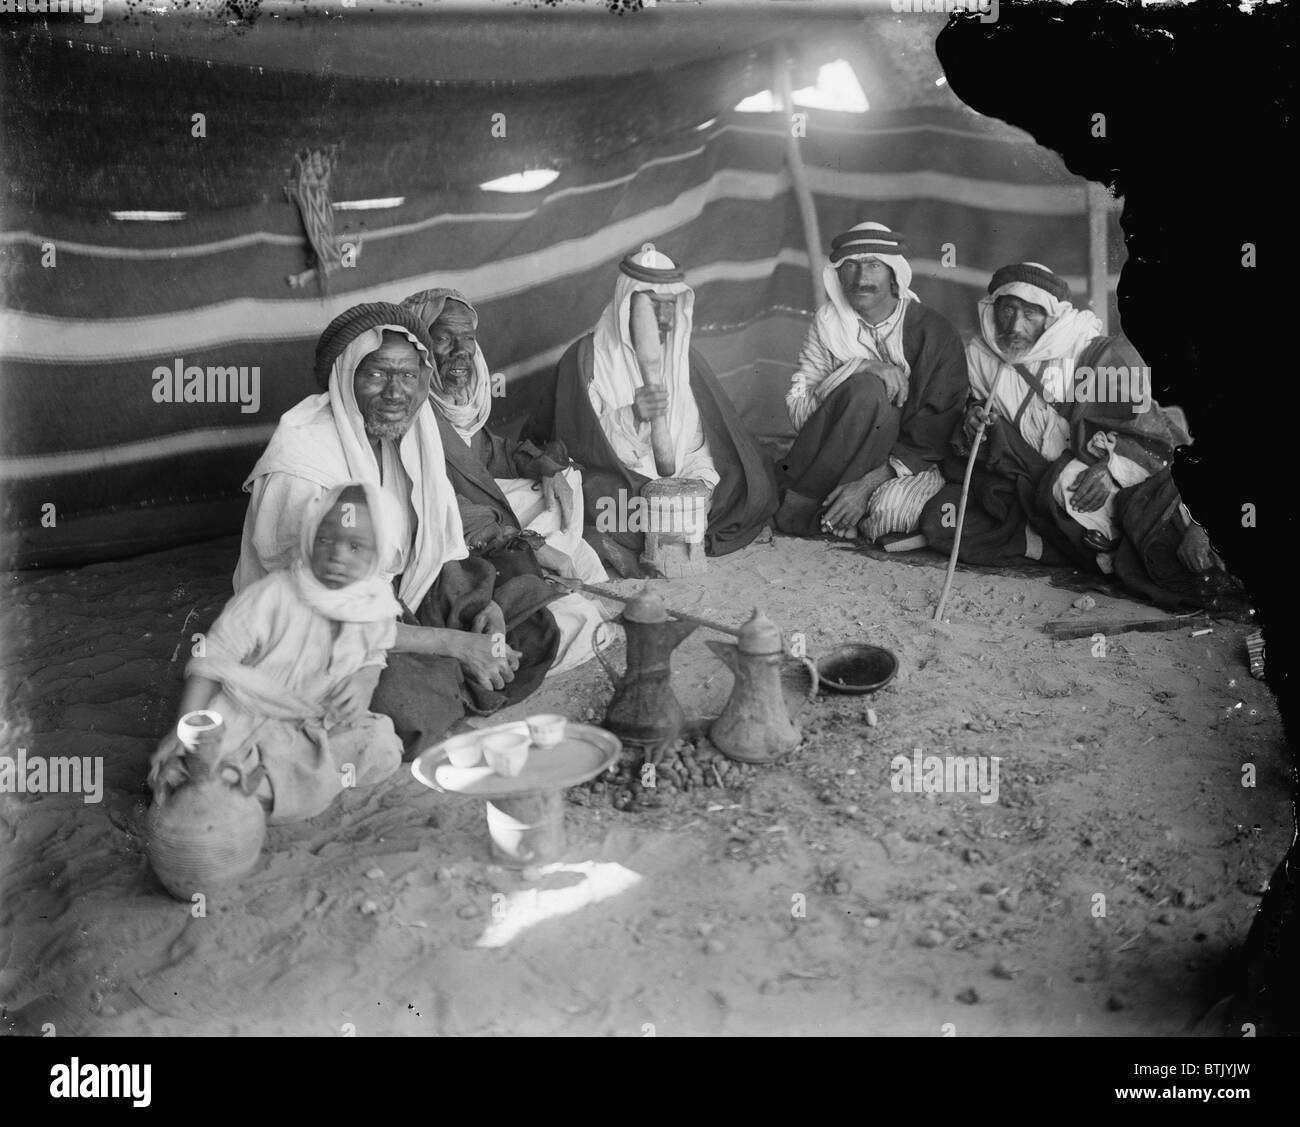 Tent at locust killers camp, in the mideast, photograph, 1898-1946. - Stock Image